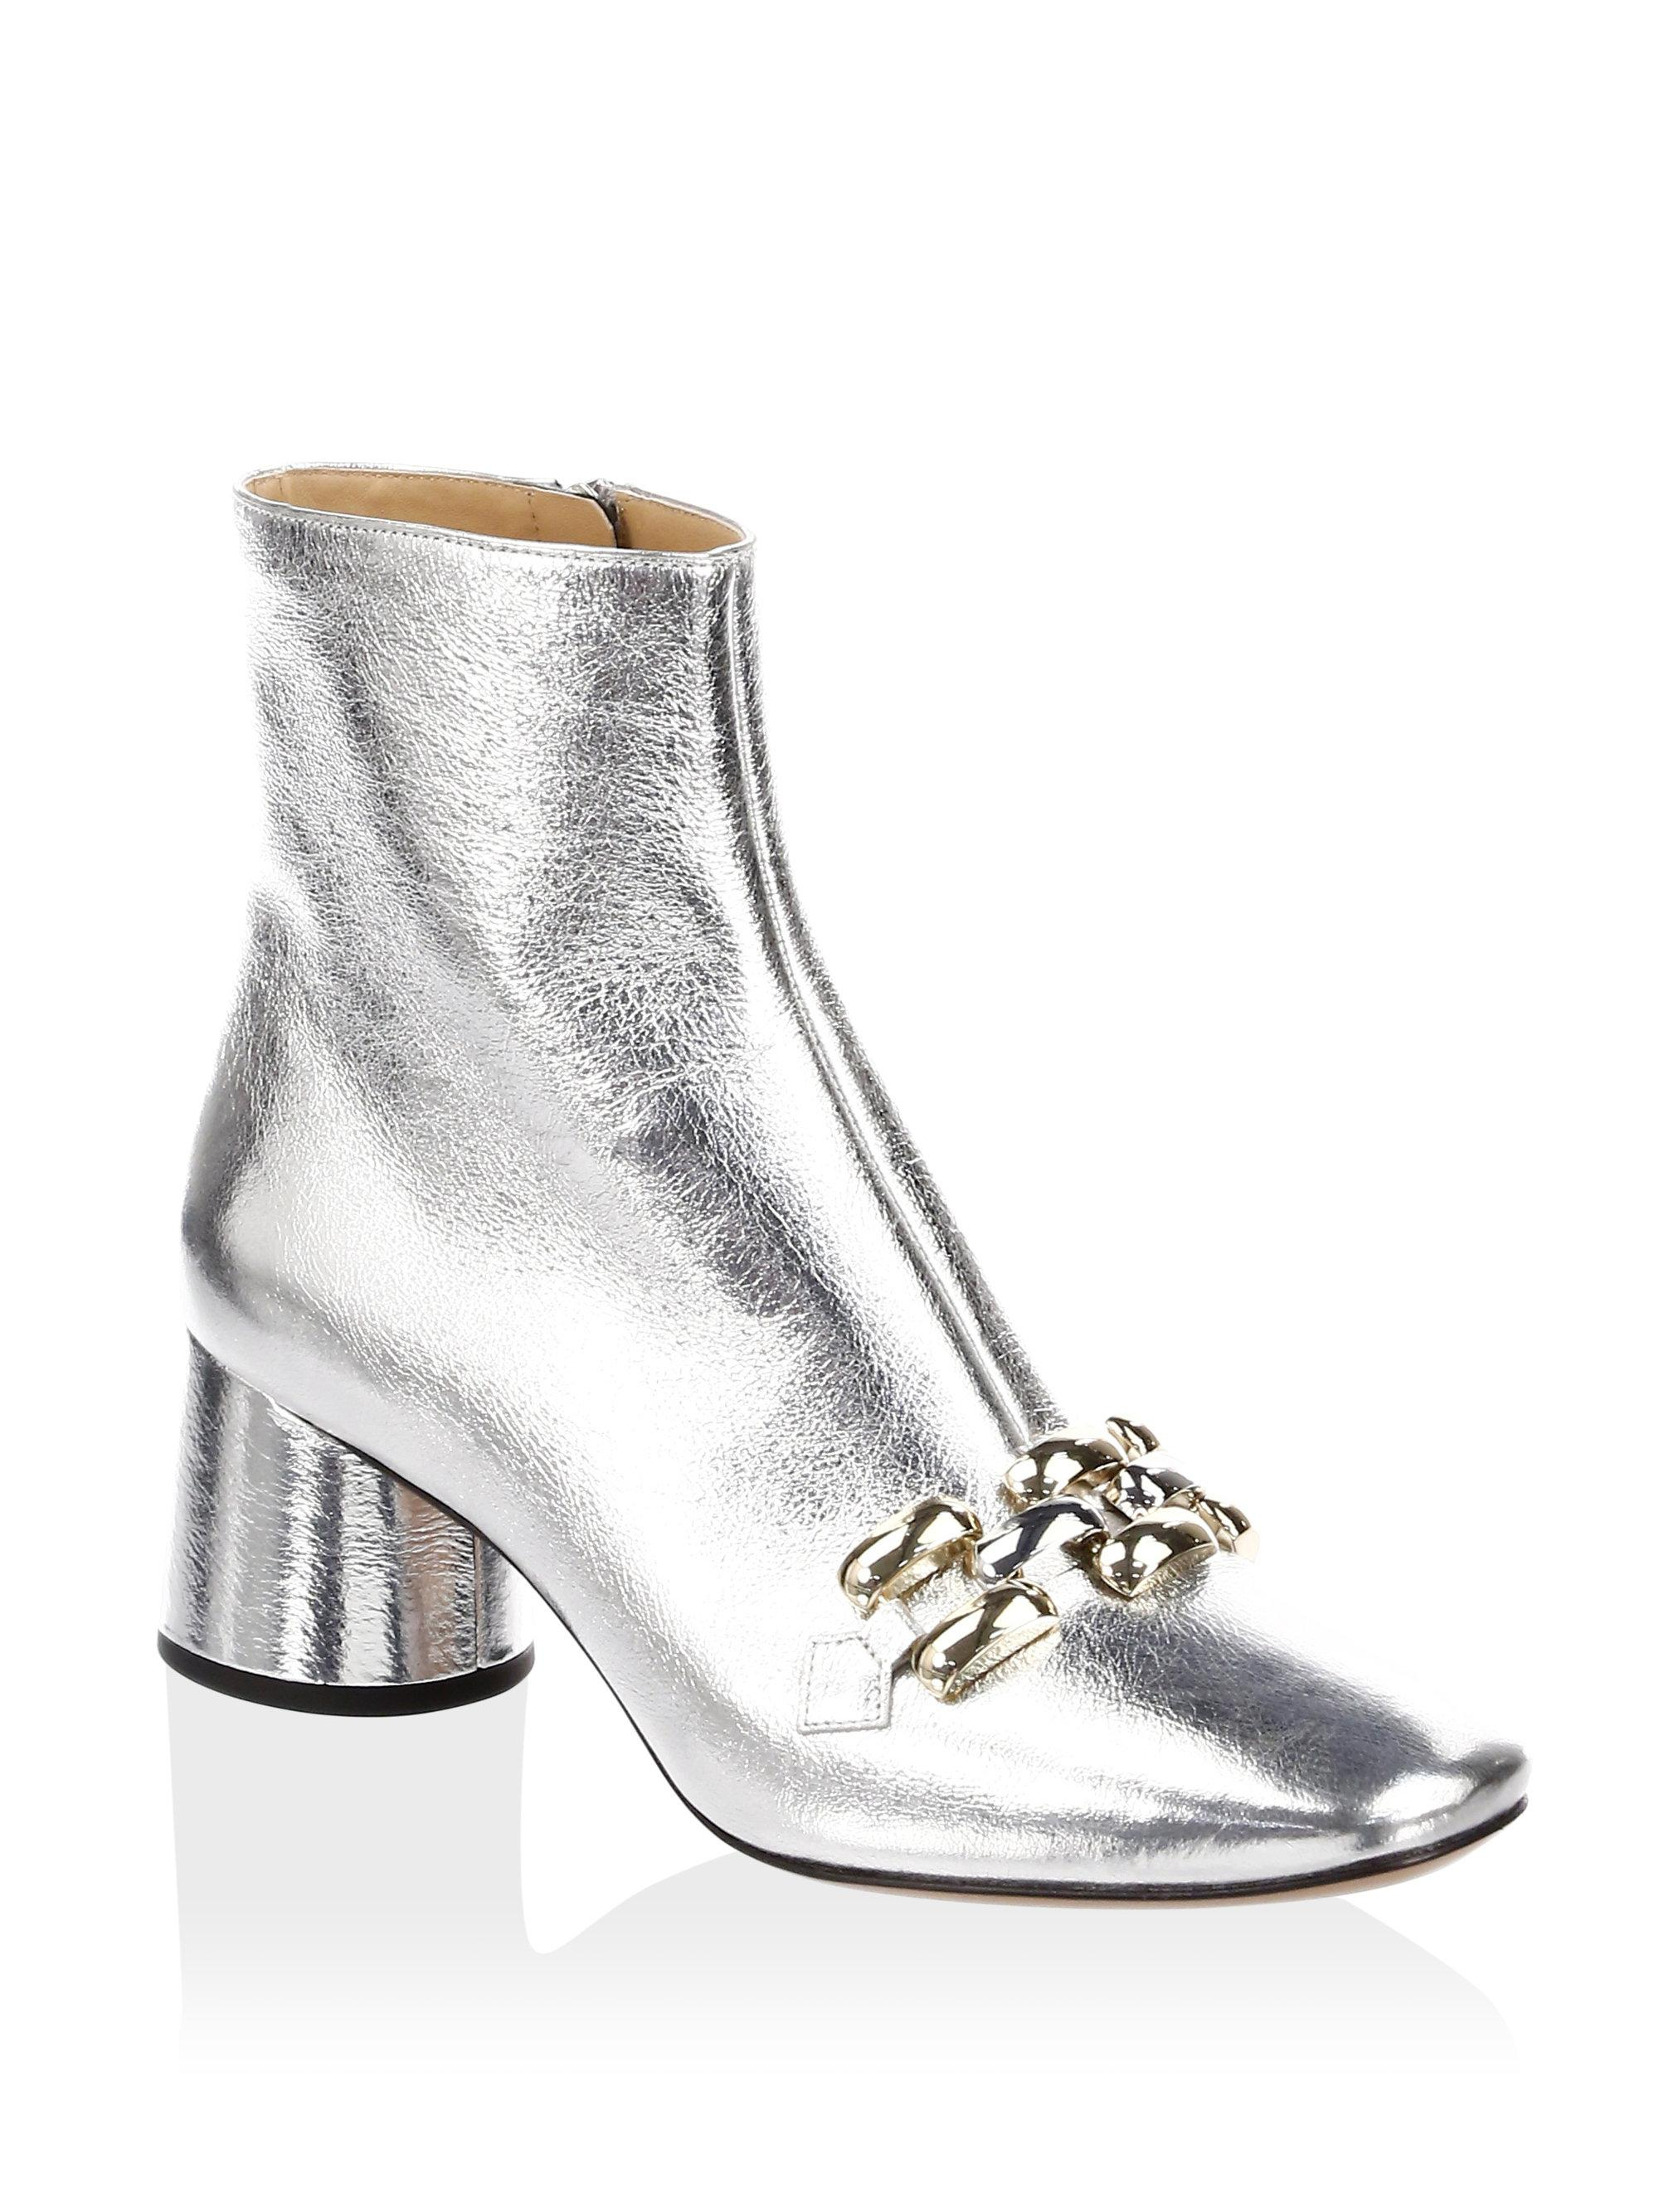 Marc Jacobs Remi Chain Link Leather Booties REdYndmV